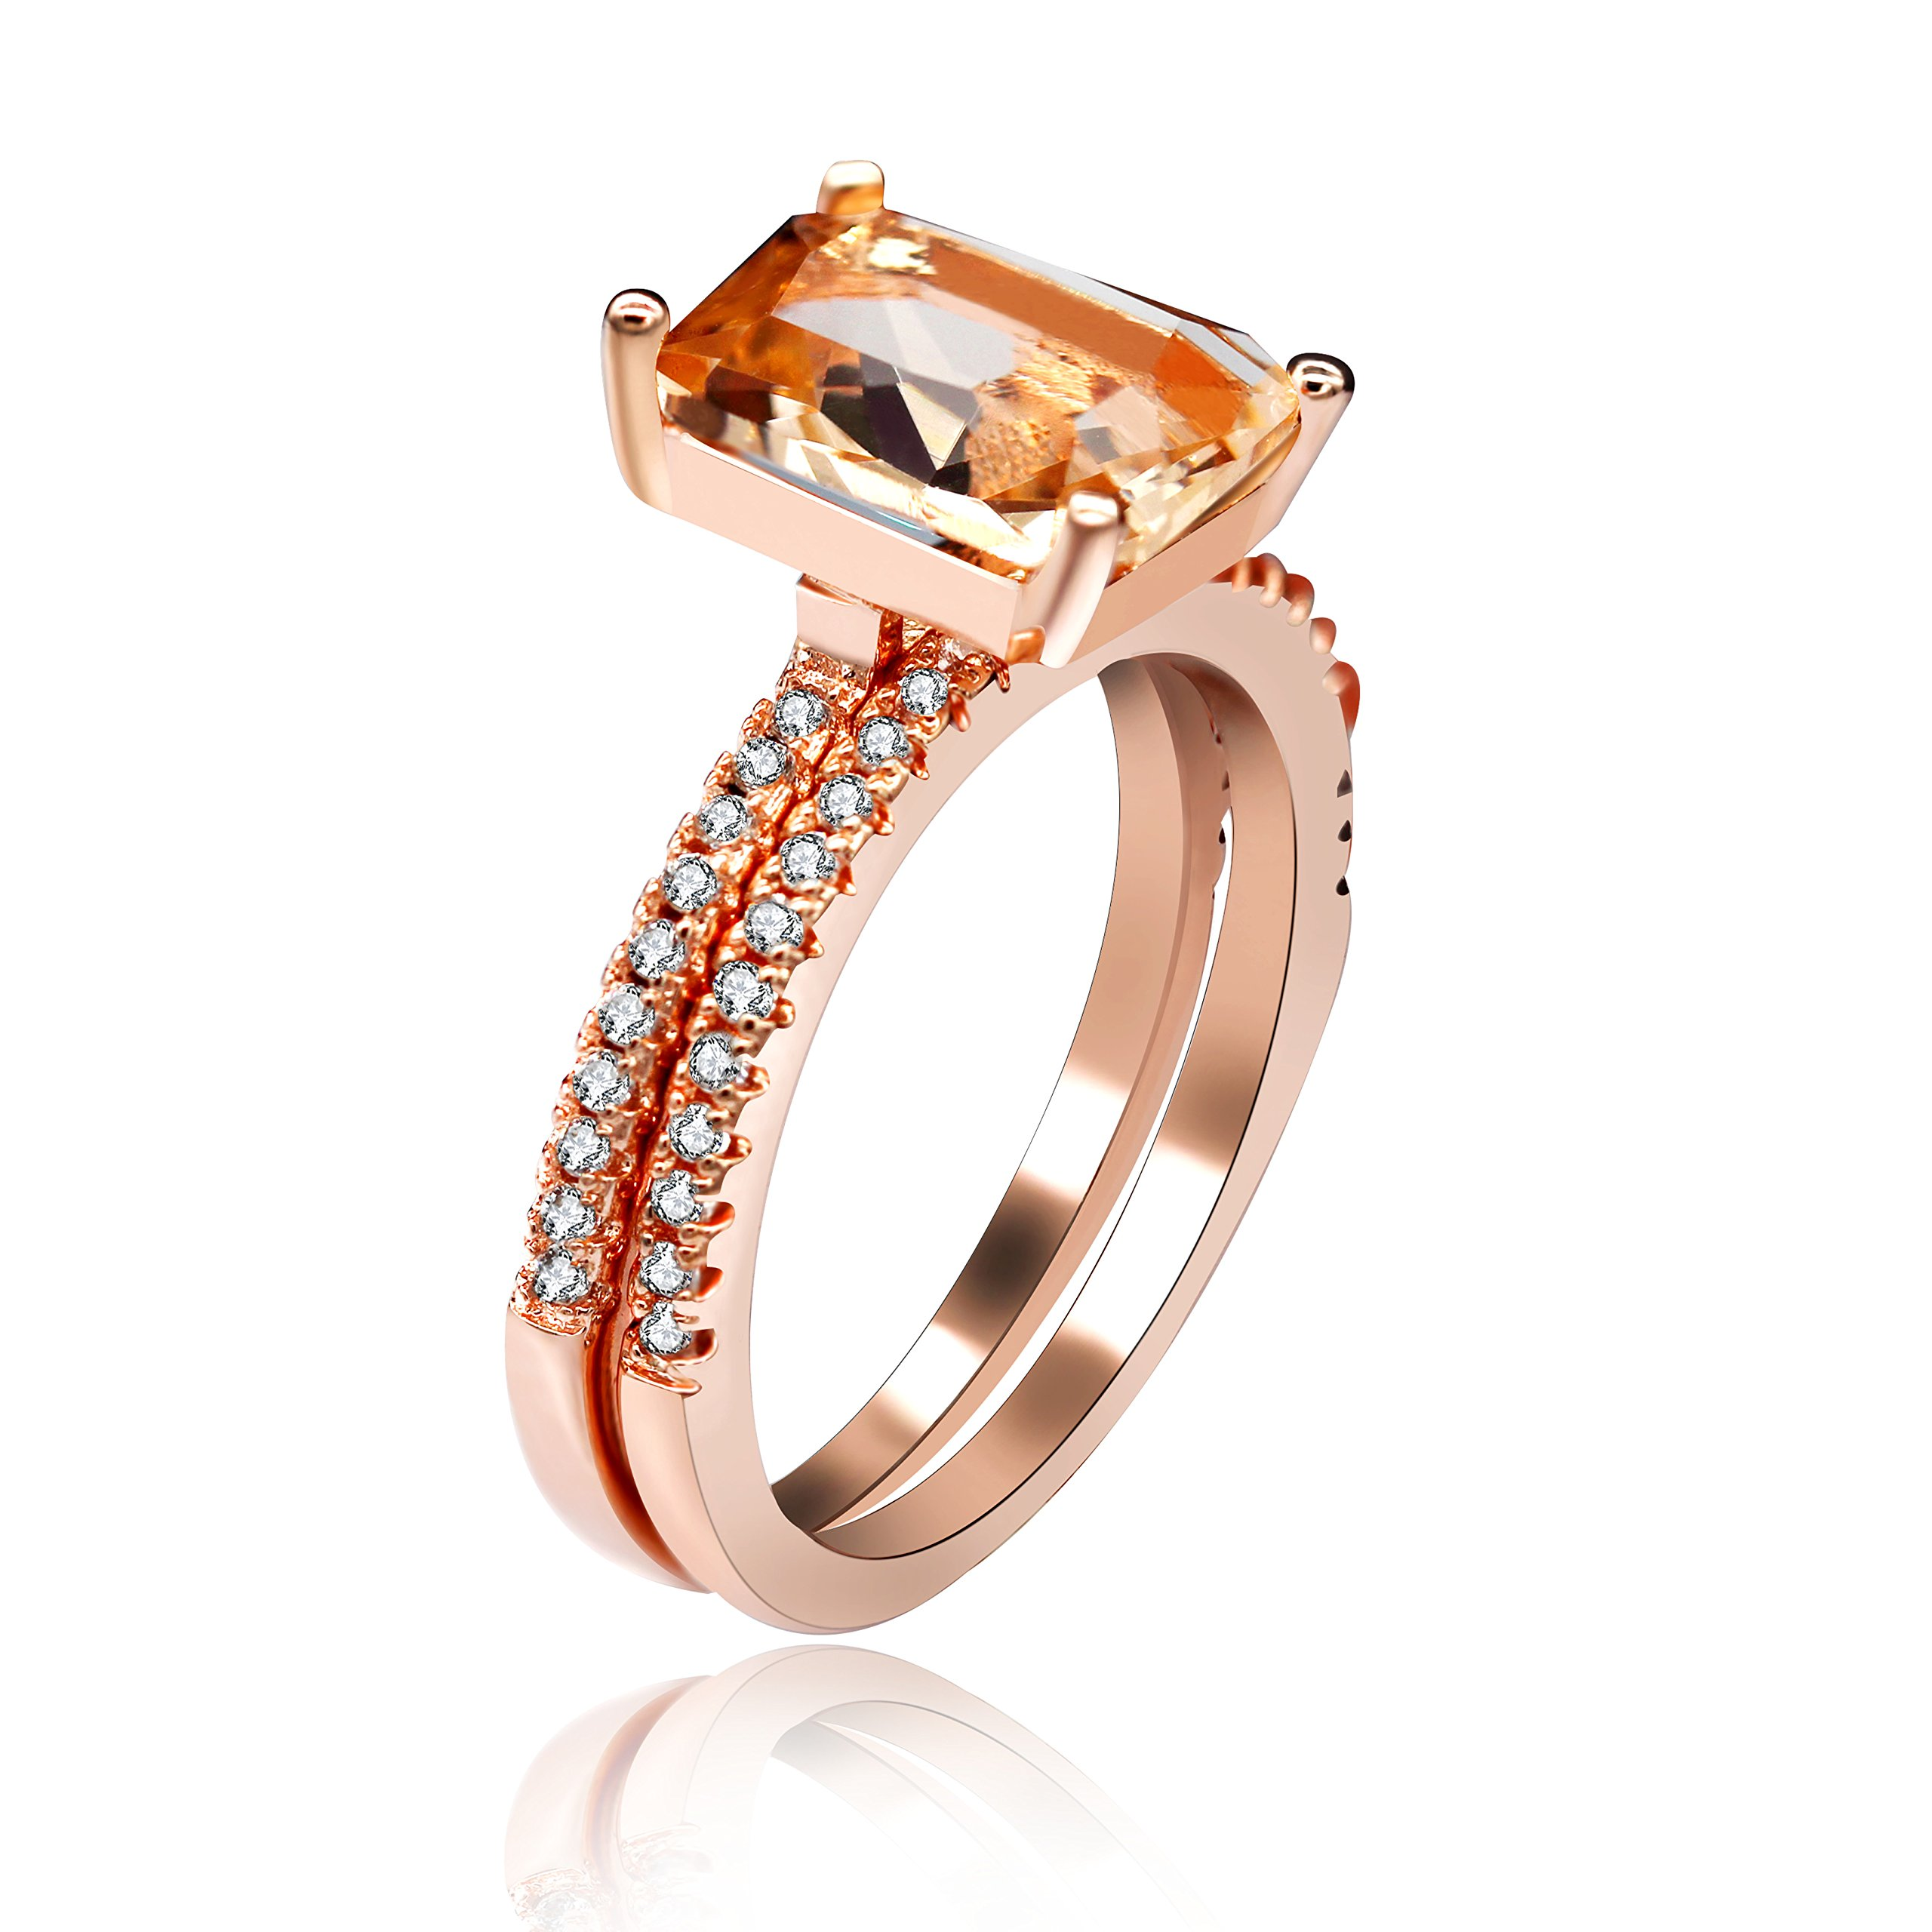 Uloveido 2 pcs Set Emerald-Cut Rectangle Yellow Cubic Zirconia Fashion Birth-Stone Stacking Rings with Round Brilliant CZ Eternity Band (Size 8) Y422